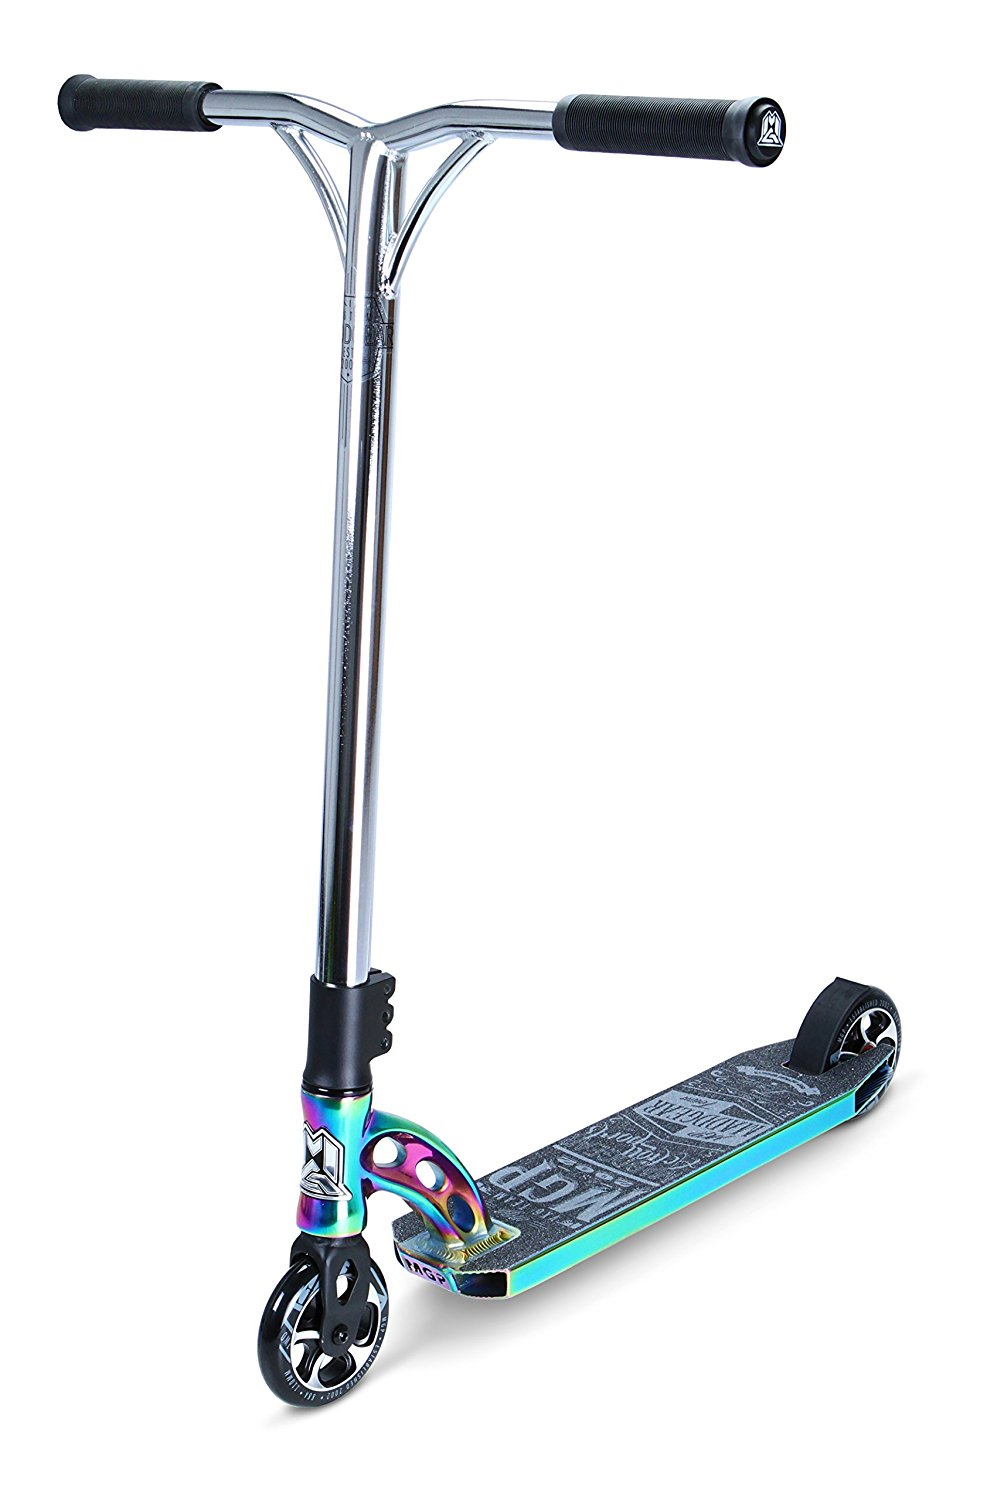 mgp madd gear vx6 stunt scooter roller team stuntscooter. Black Bedroom Furniture Sets. Home Design Ideas